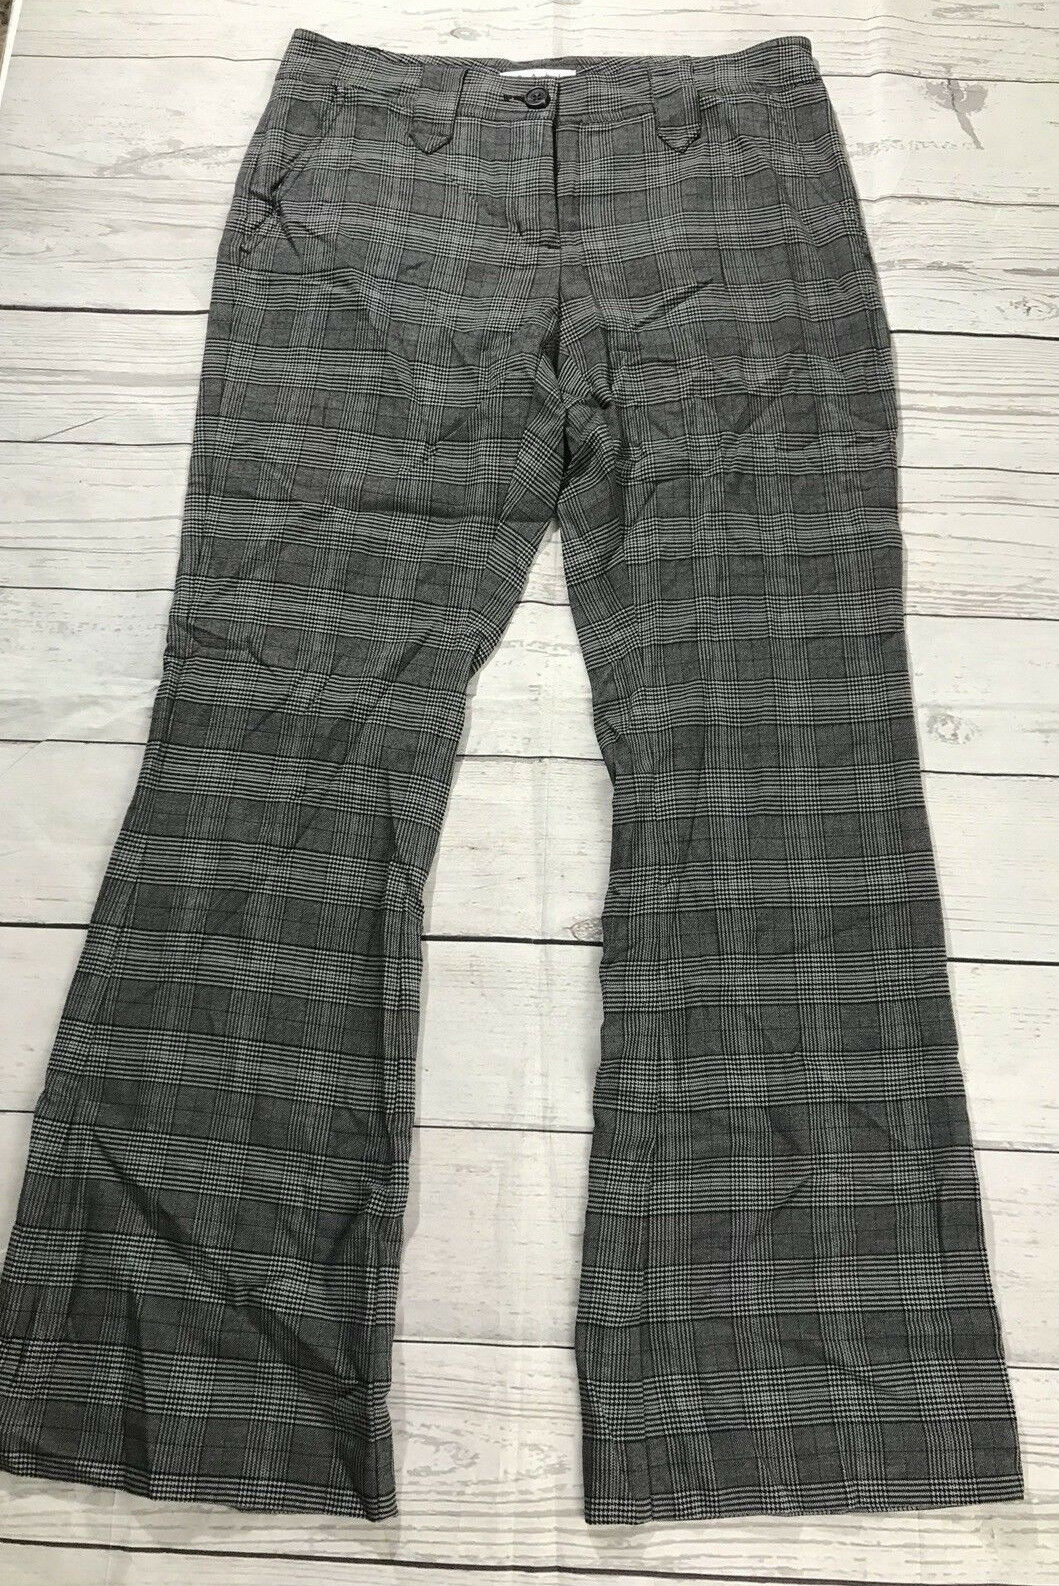 Cabi 922 Counsel Women's Pants Size 6 Regular color Glenplaid New